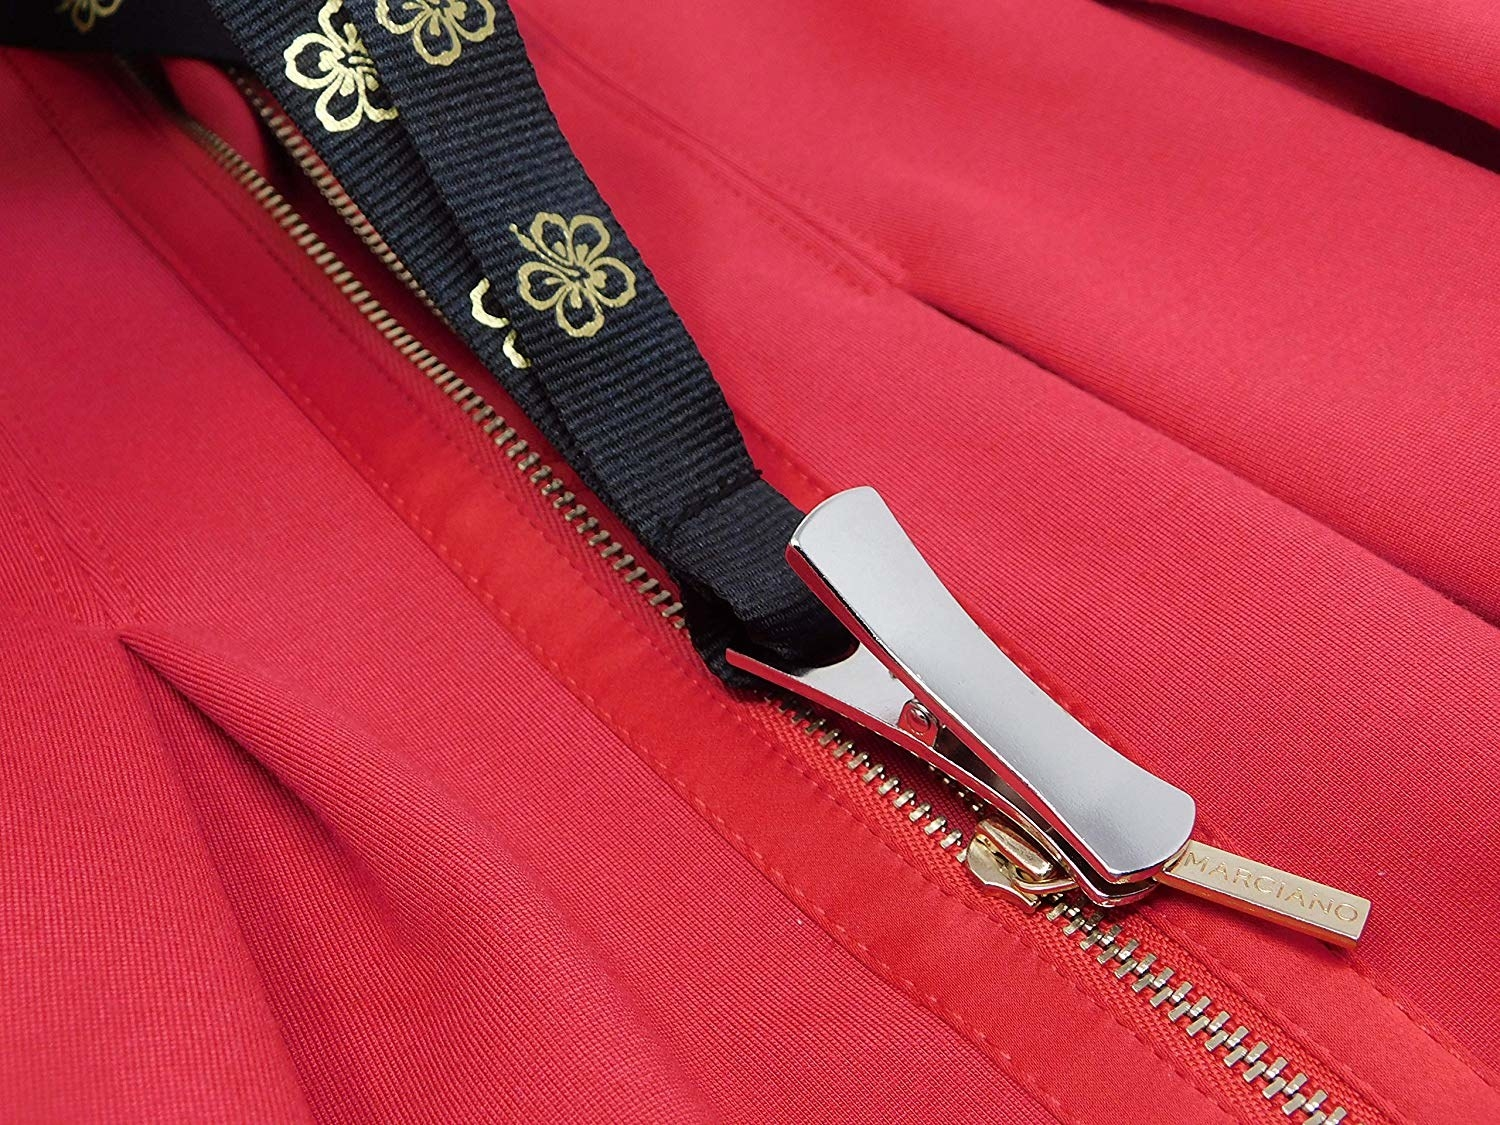 The zipper pull with a clasp at the end